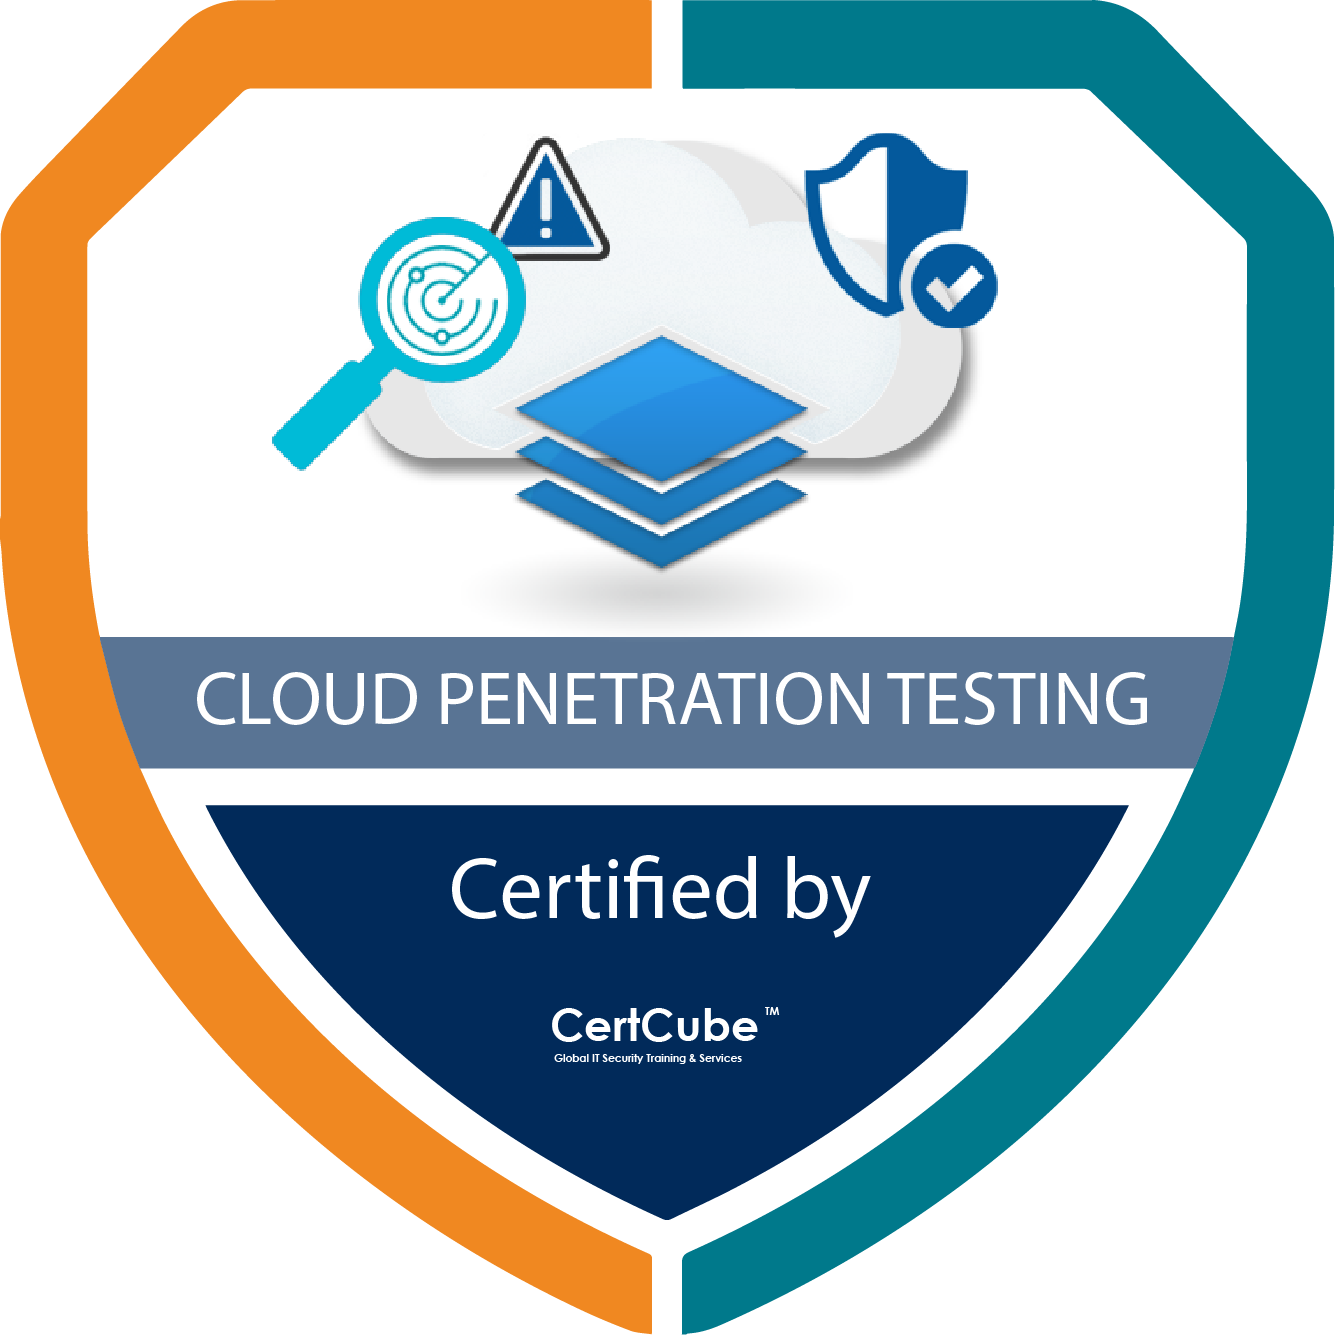 Cloud penetration testing